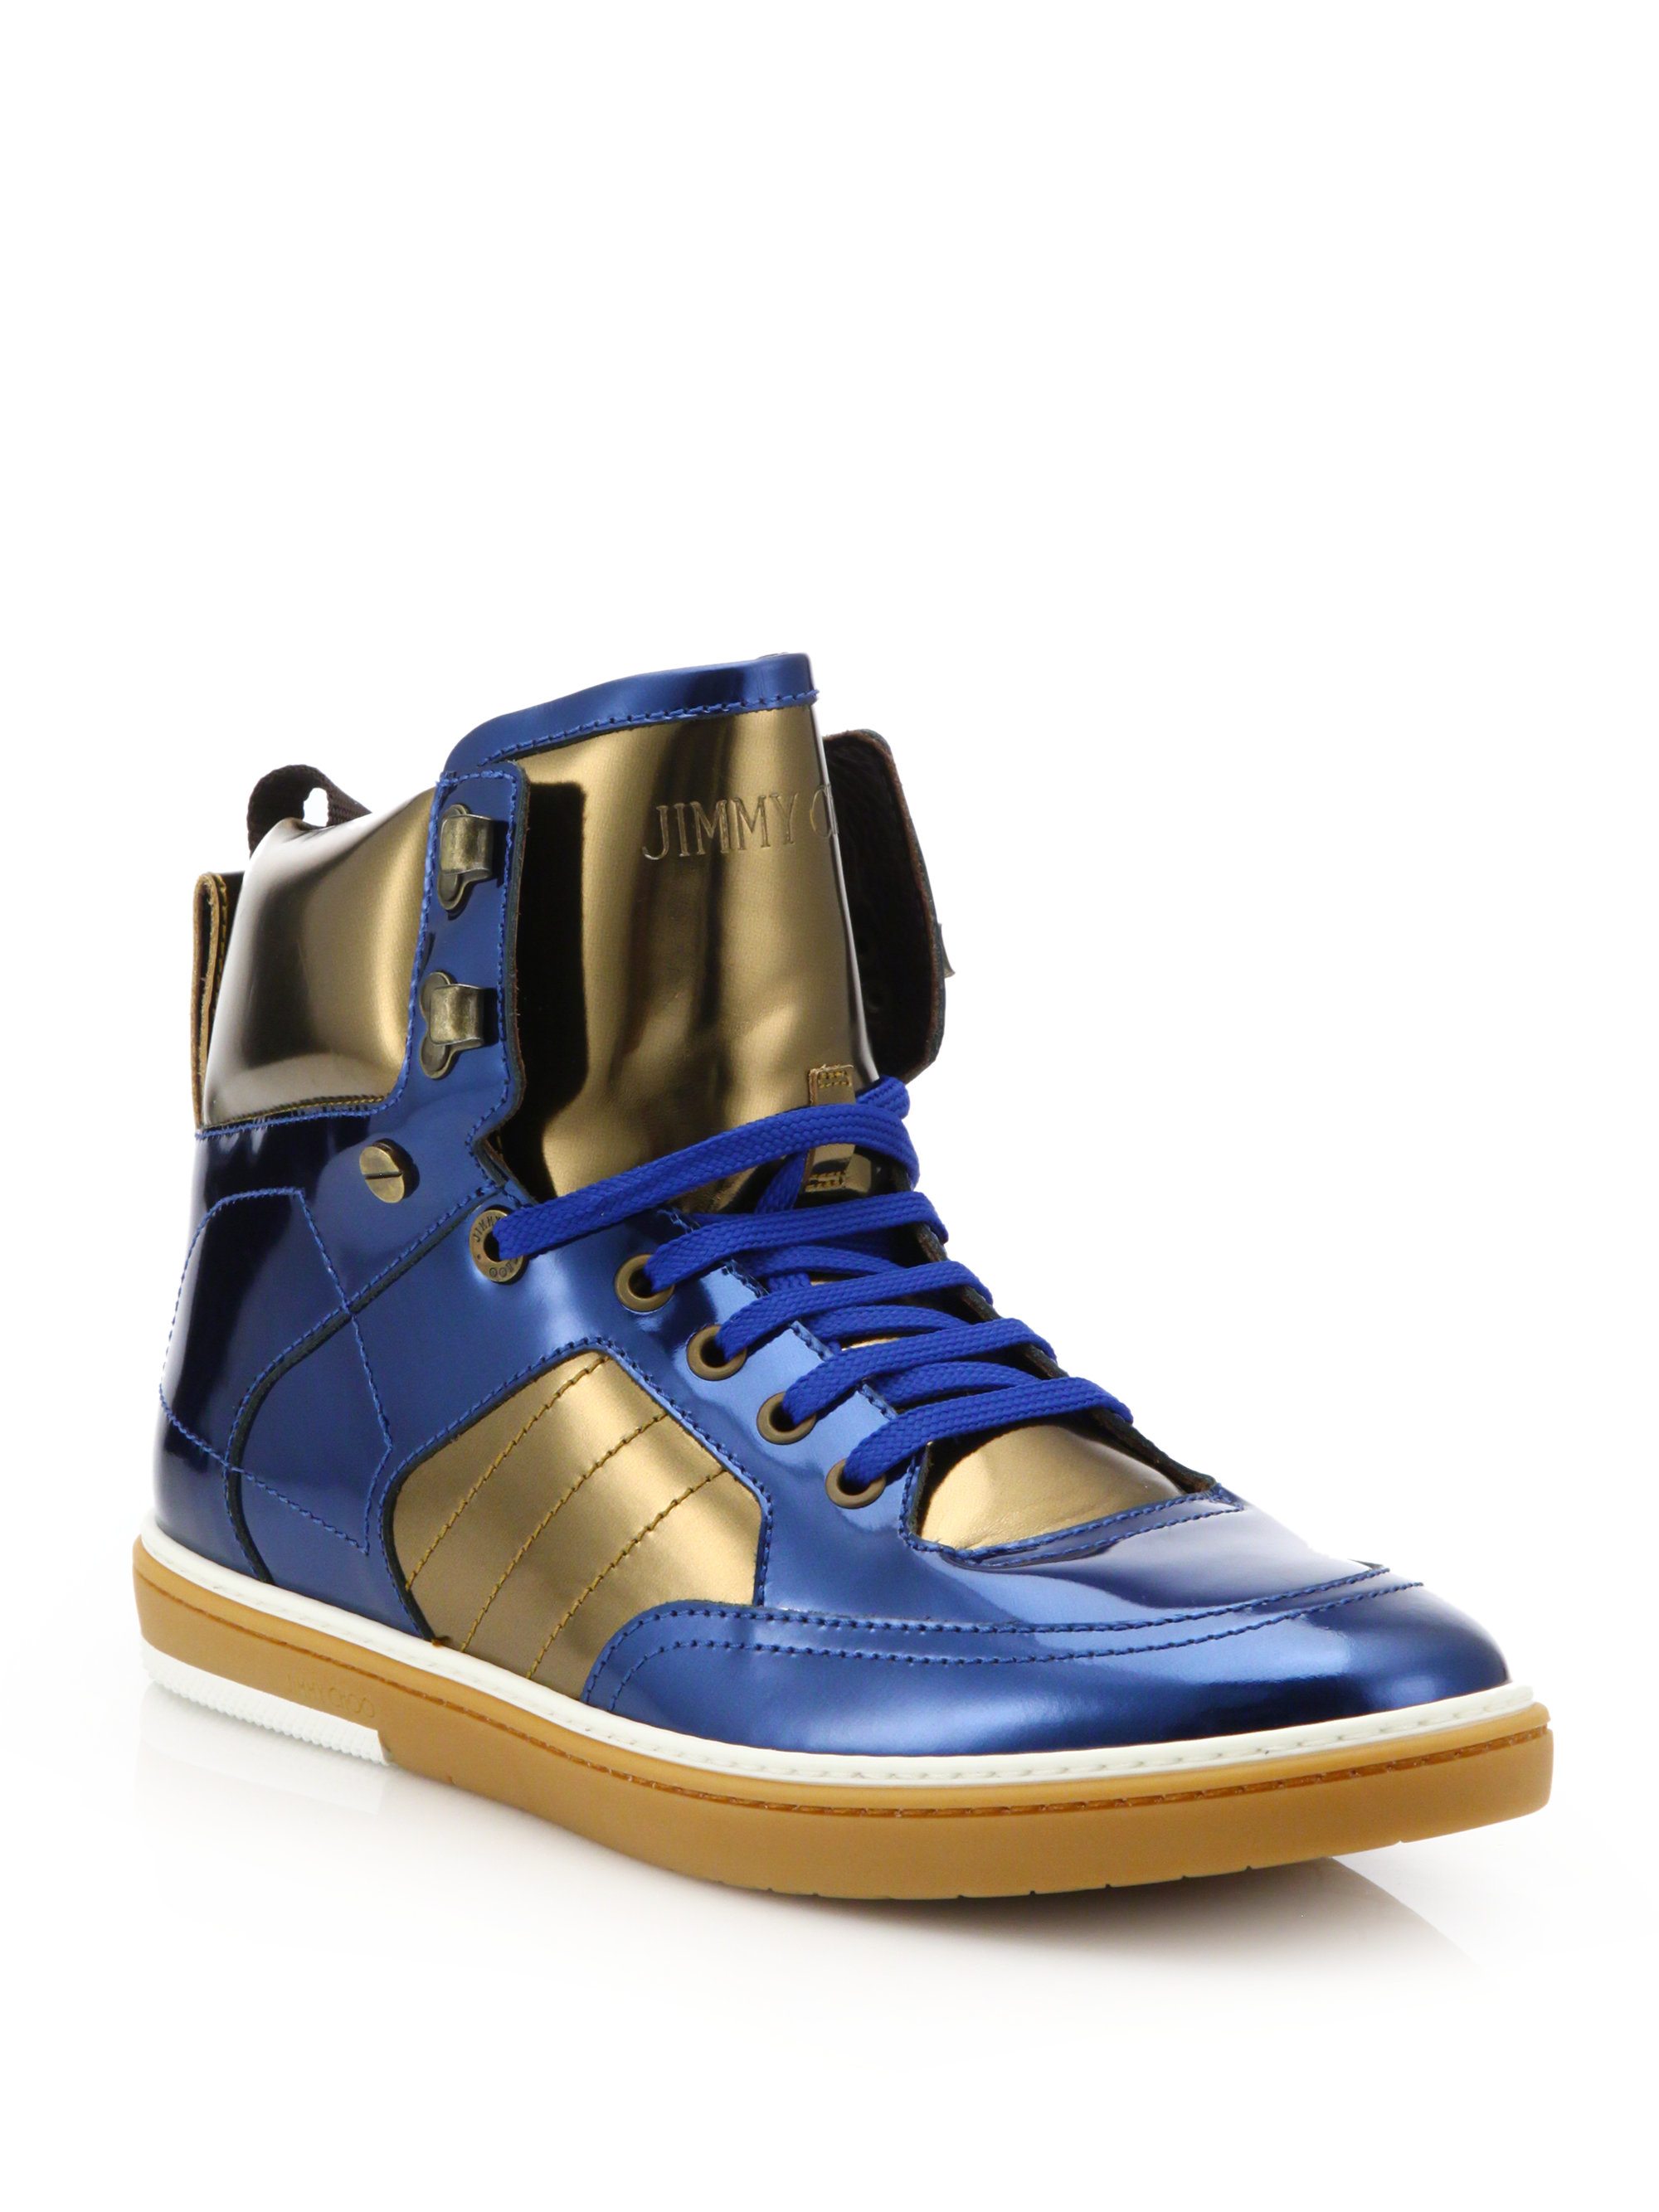 latest cheap price Jimmy Choo Metallic High-Top Sneakers official site online shop from china shop cheap online manchester great sale online 8LTzFfkBTN